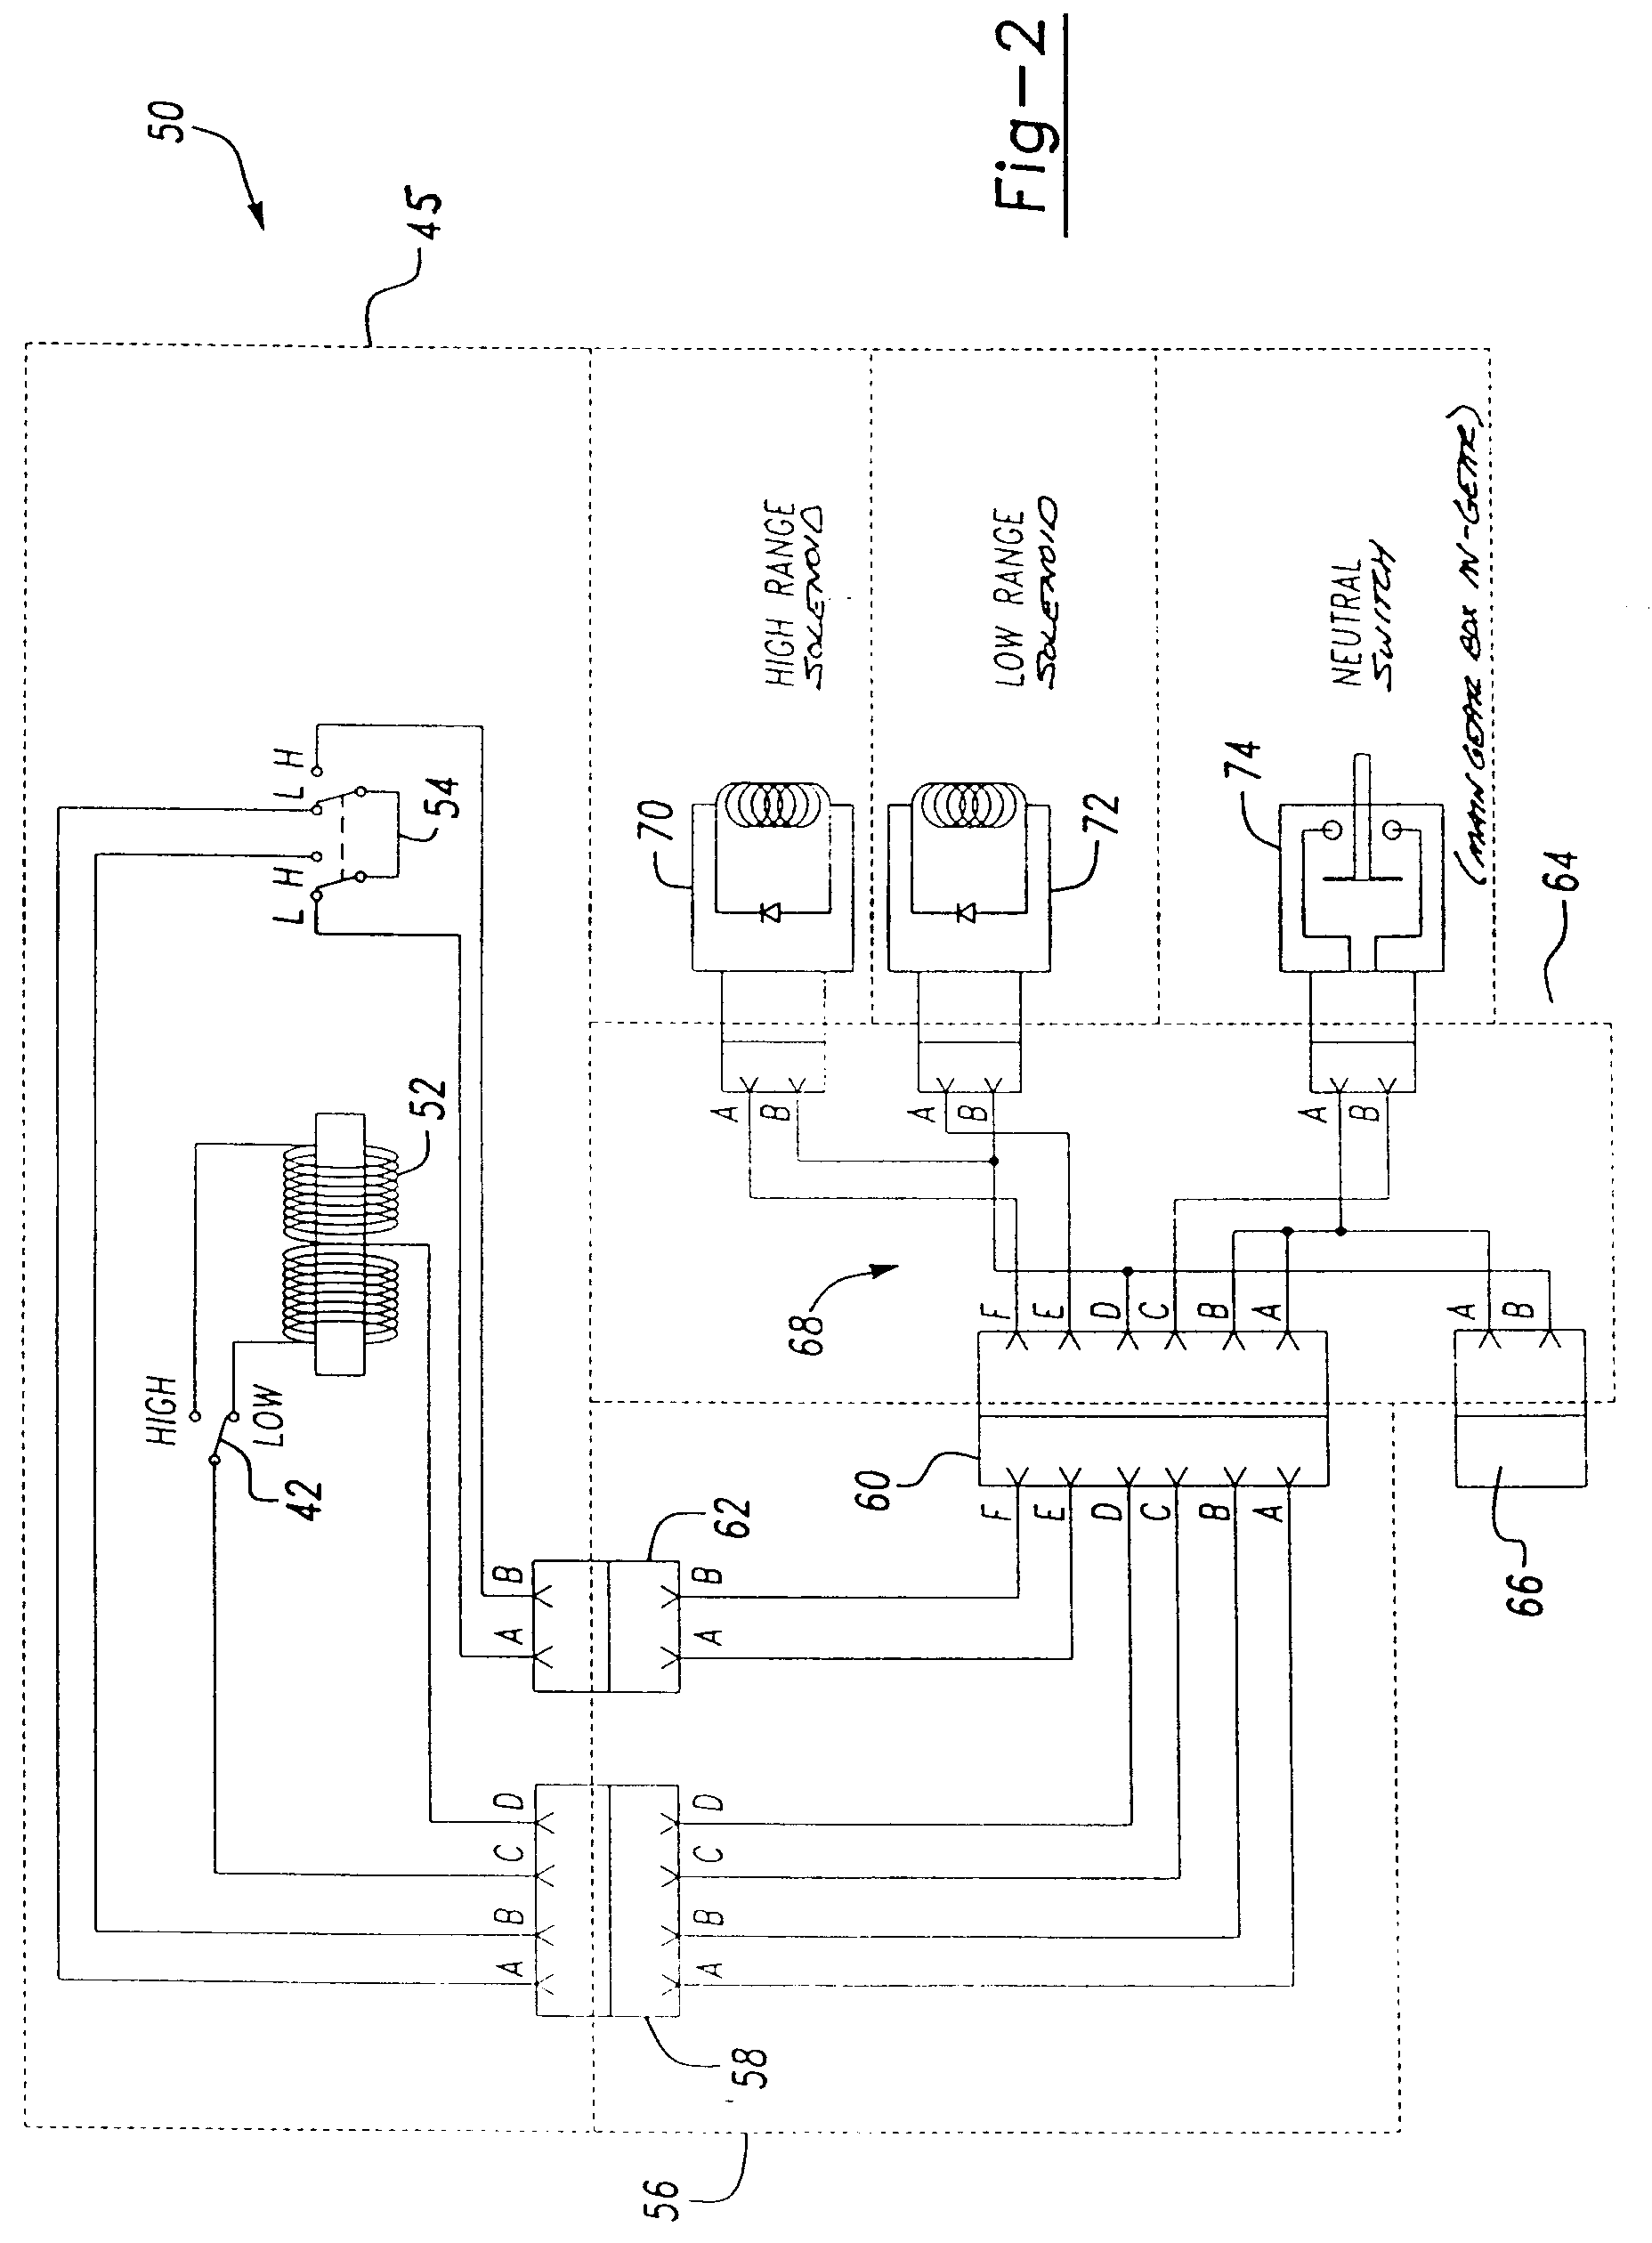 wiring diagram for meritor transmission get free image about wiring diagram